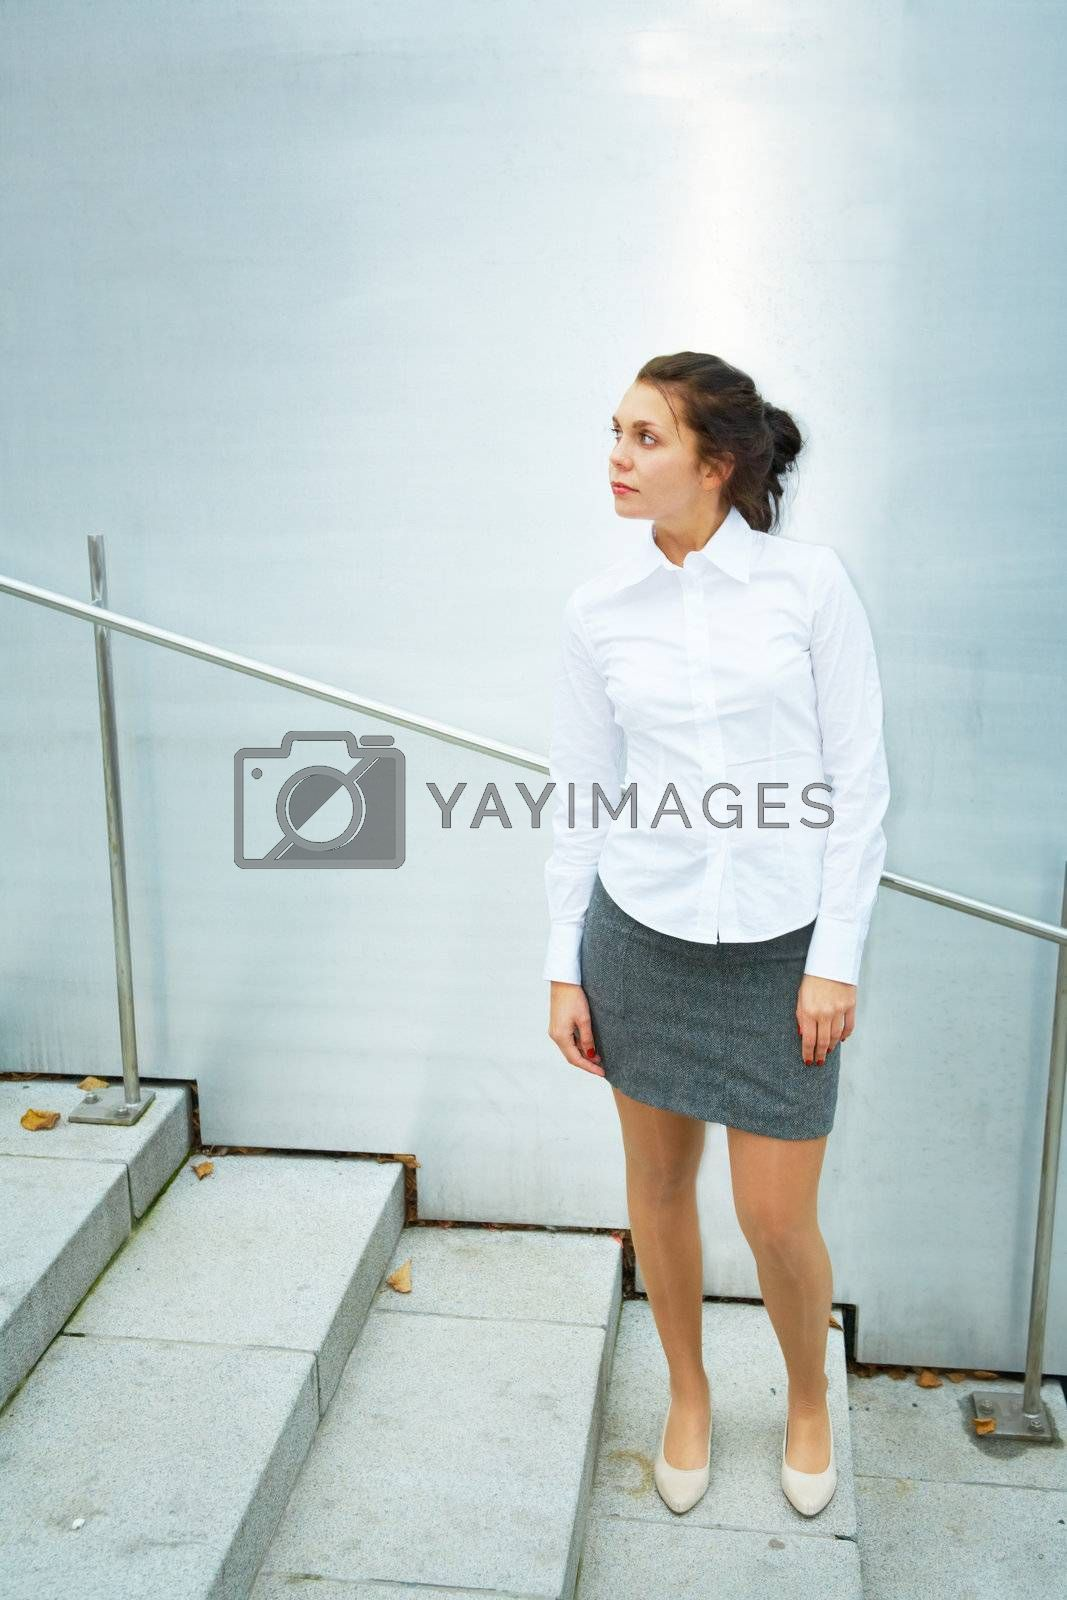 Royalty free image of Young Woman by Luminis